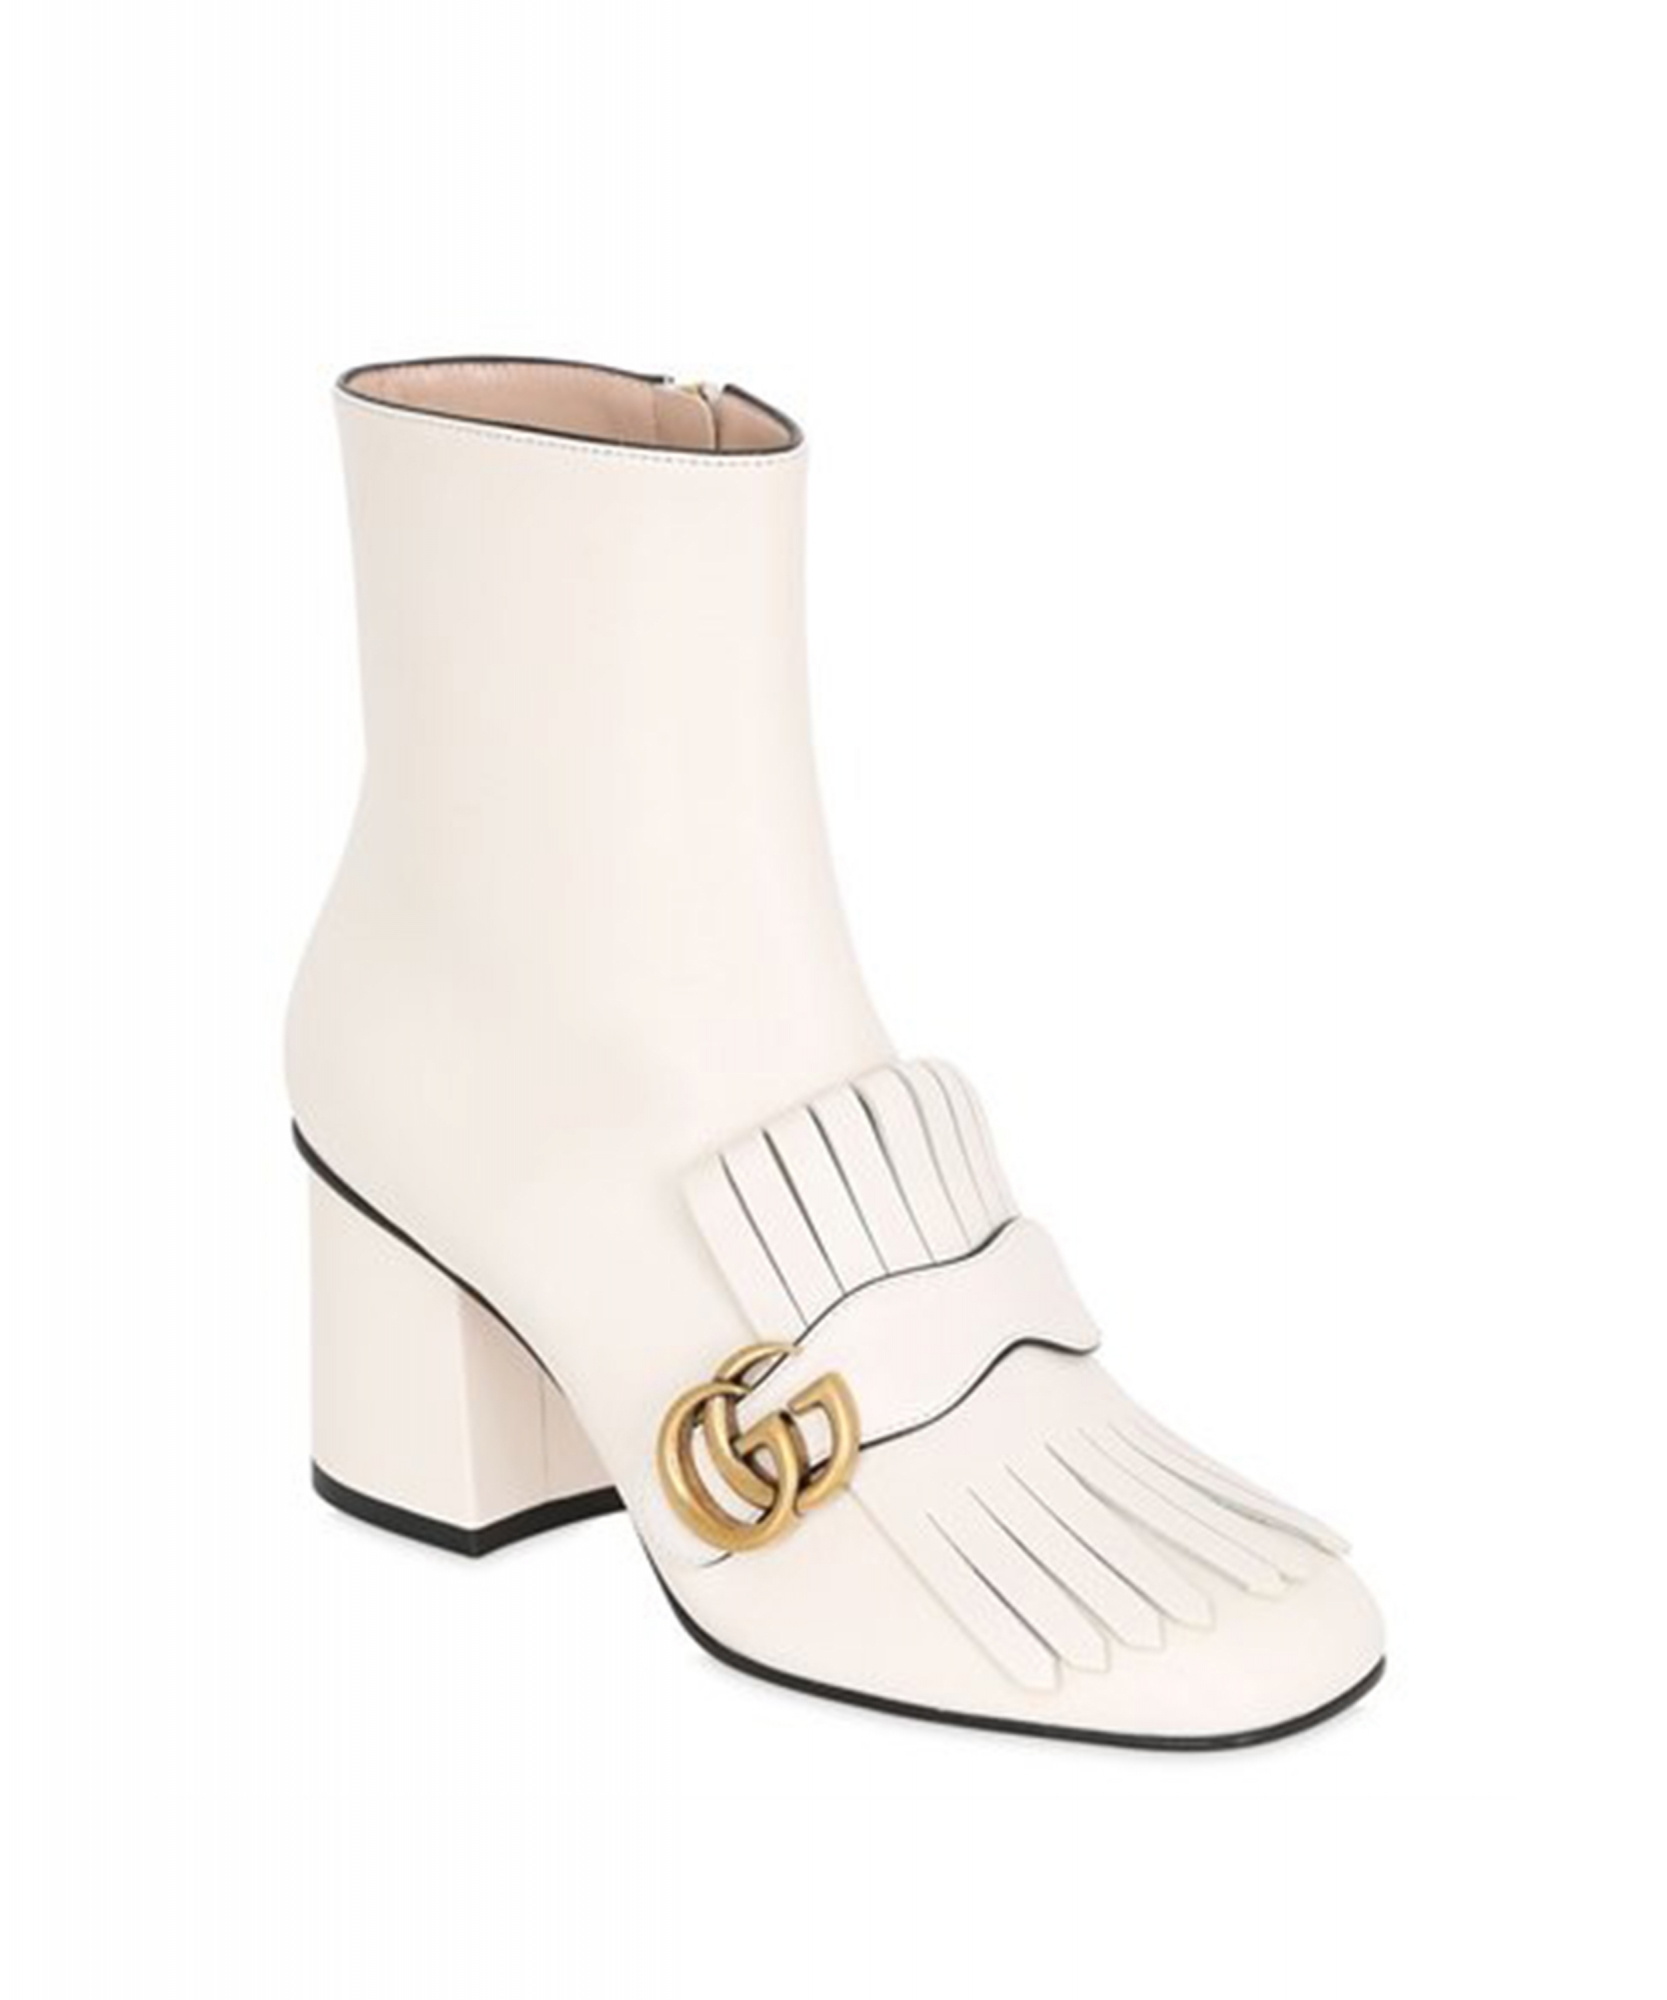 Gucci White Marmont Fringed Leather